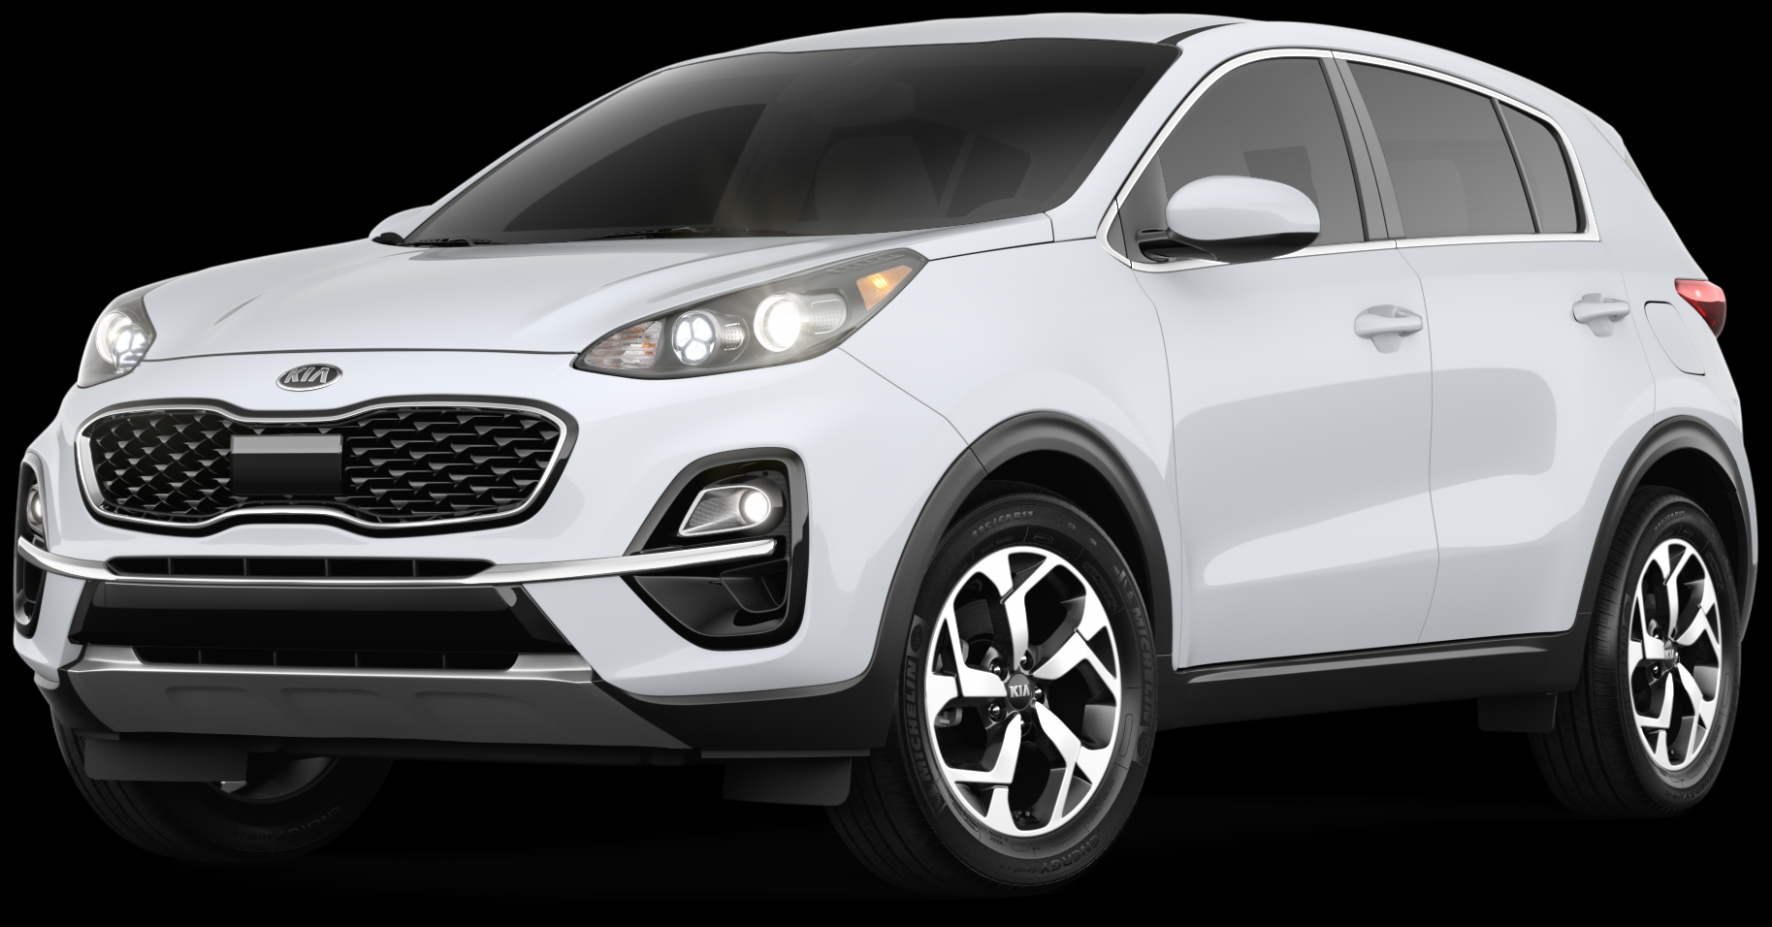 7 Kia Sportage Incentives, Specials & Offers in Erie PA